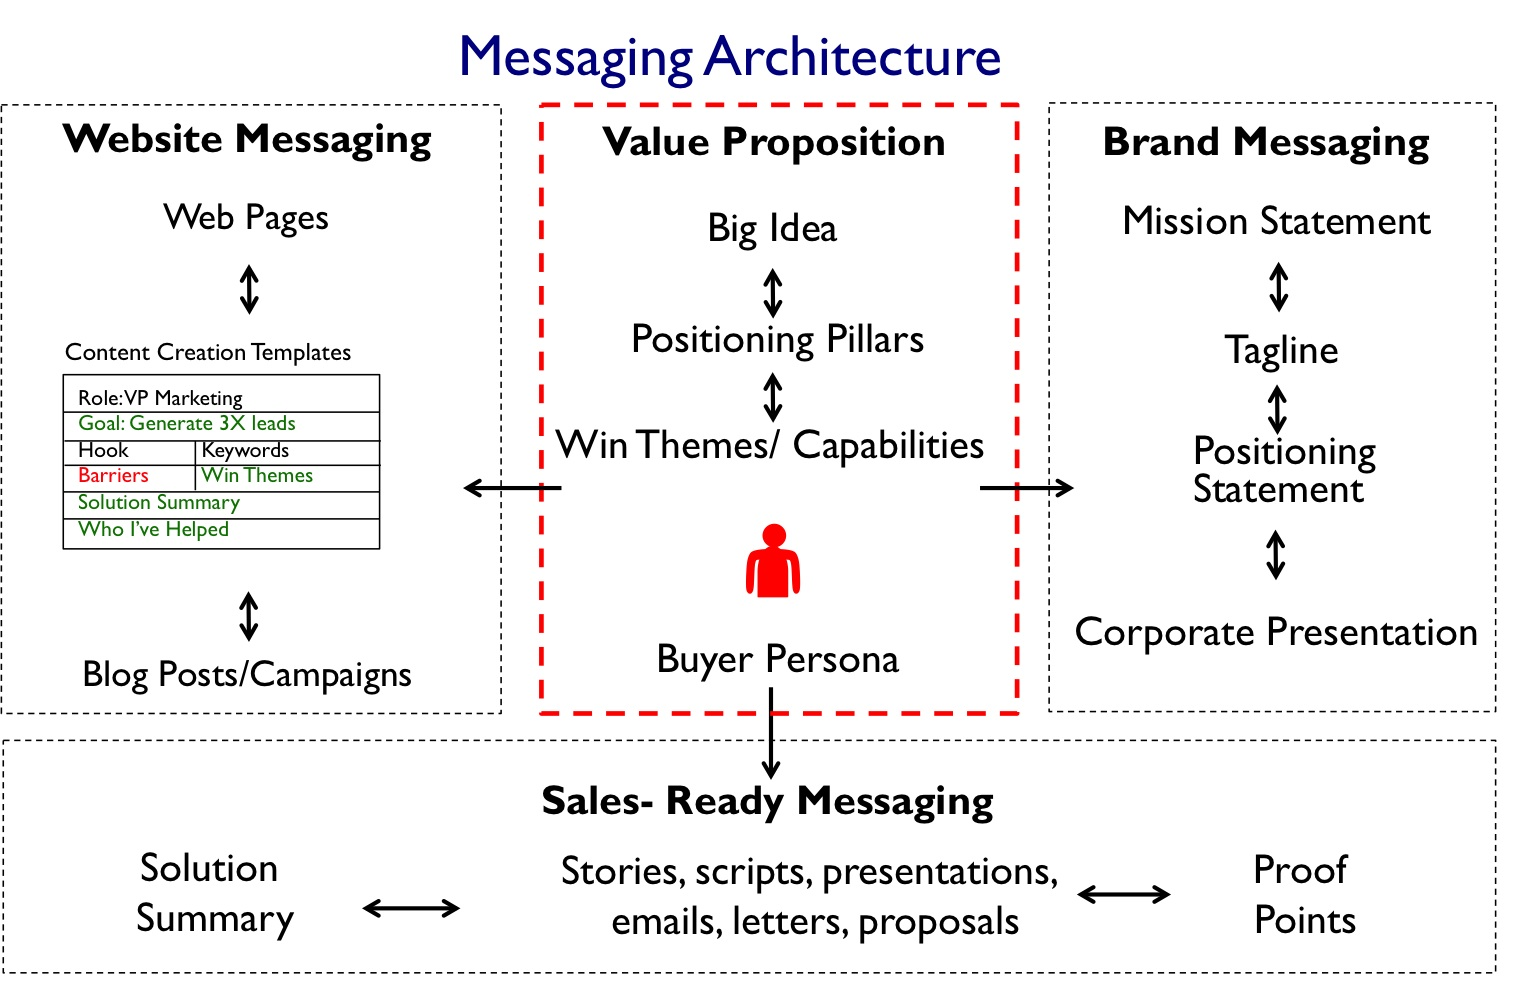 messaging architecture.11.13